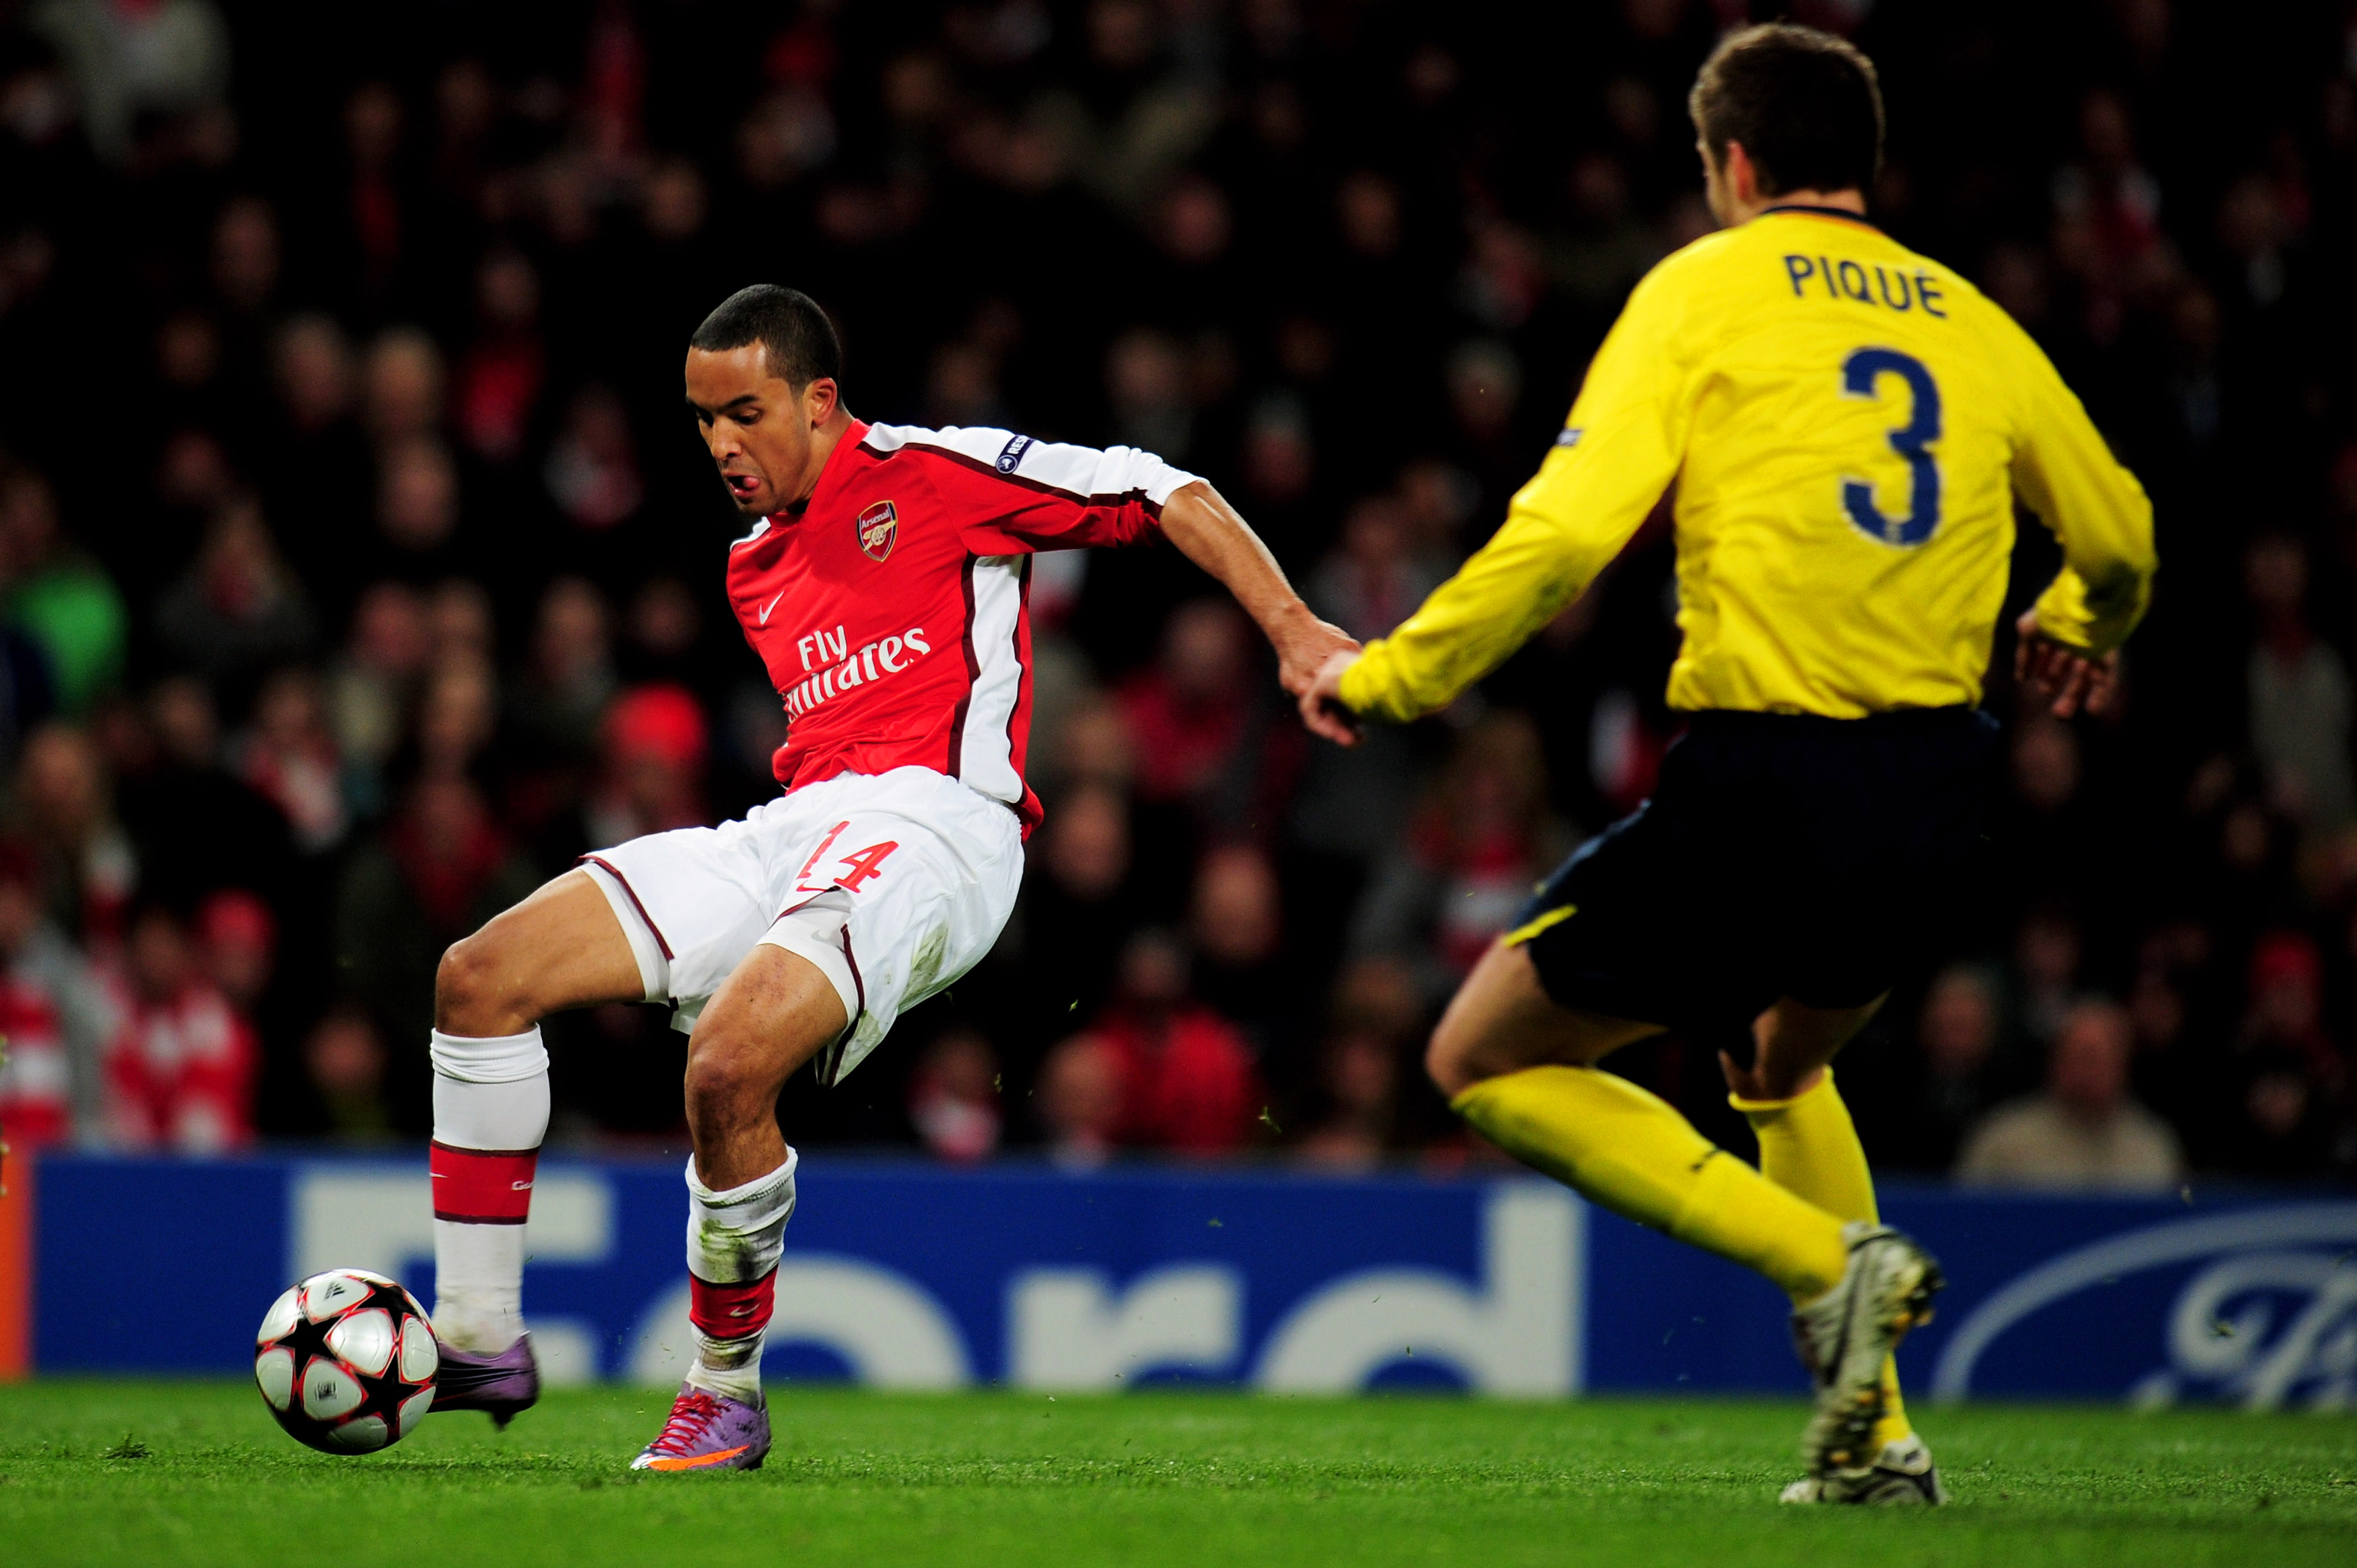 LONDON, ENGLAND - MARCH 31:  Theo Walcott of Arsenal shoots past Gerard Pique of Barcelona to score a goal during the UEFA Champions League quarter final first leg match between Arsenal and FC Barcelona at the Emirates Stadium on March 31, 2010 in London,